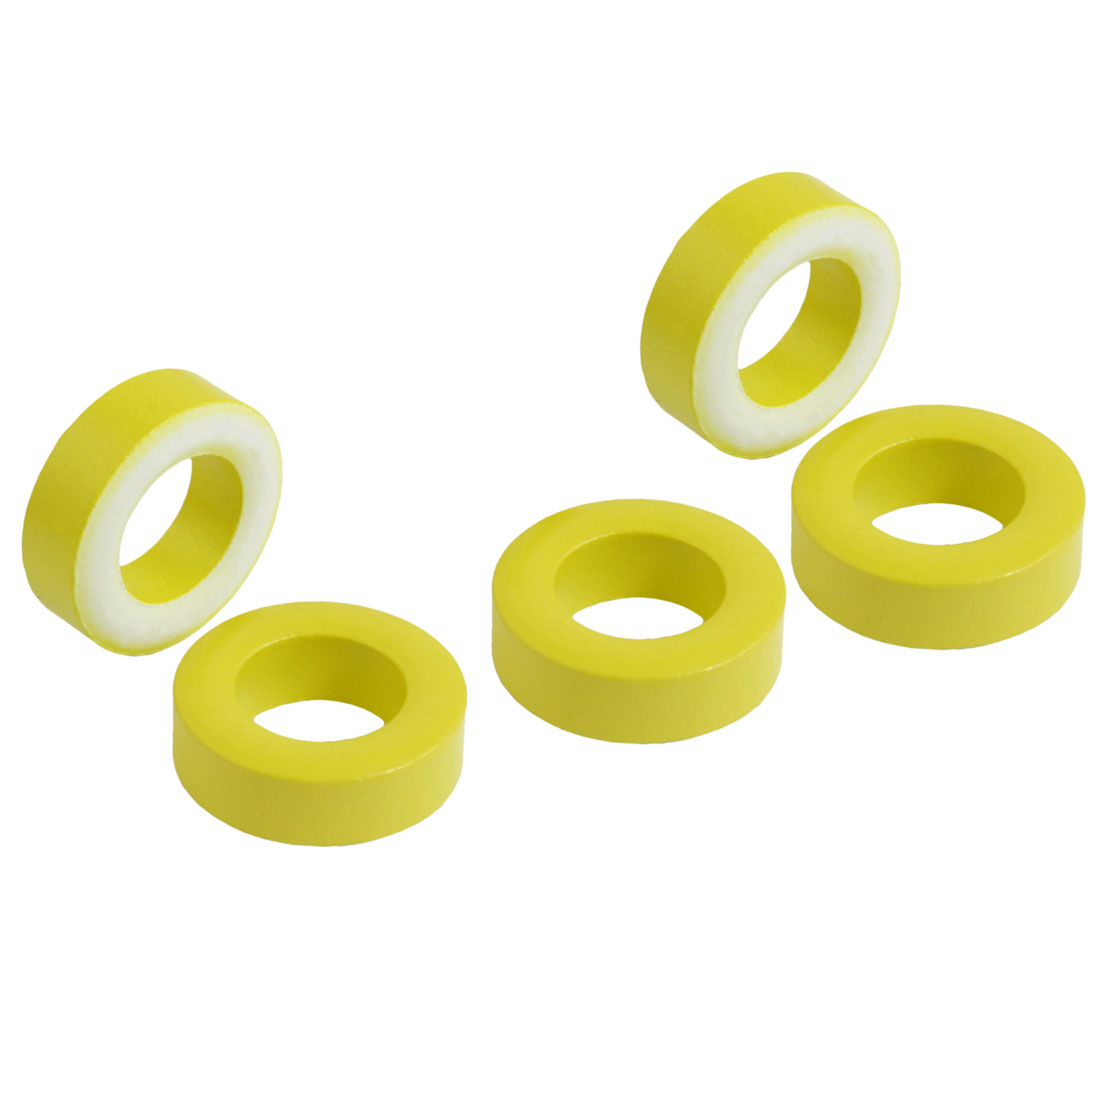 5 Pcs 24mm x 14mm x 8mm Yellow White Iron Core Power Inductor Ferrite Ring